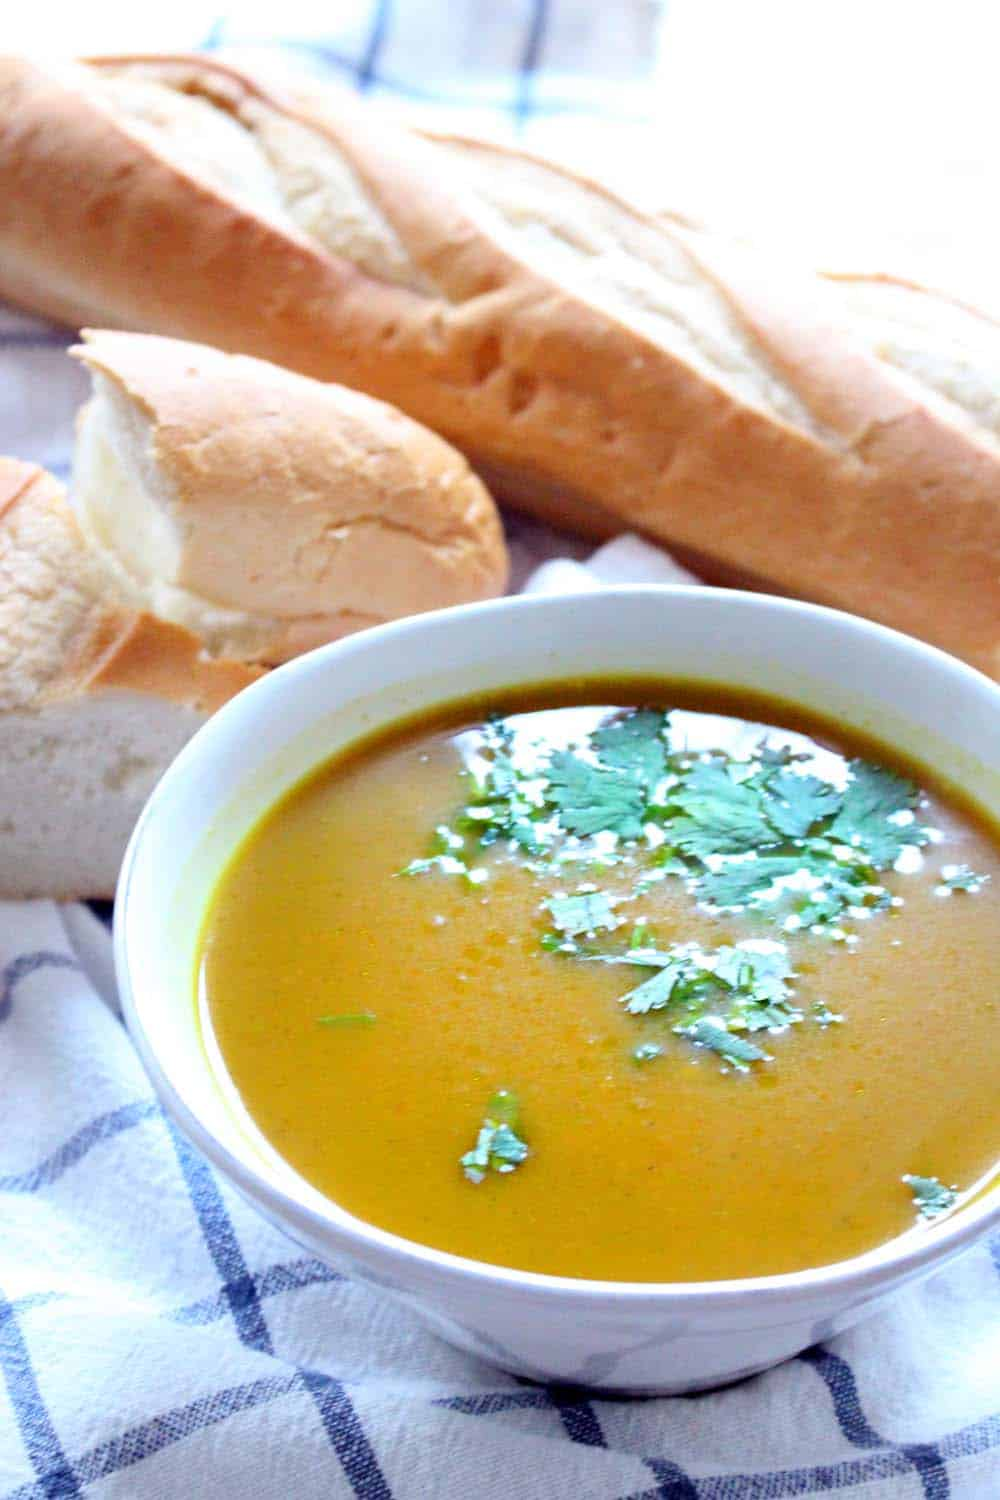 Slow-Cooker Butternut Squash Soup (with curry and ginger)